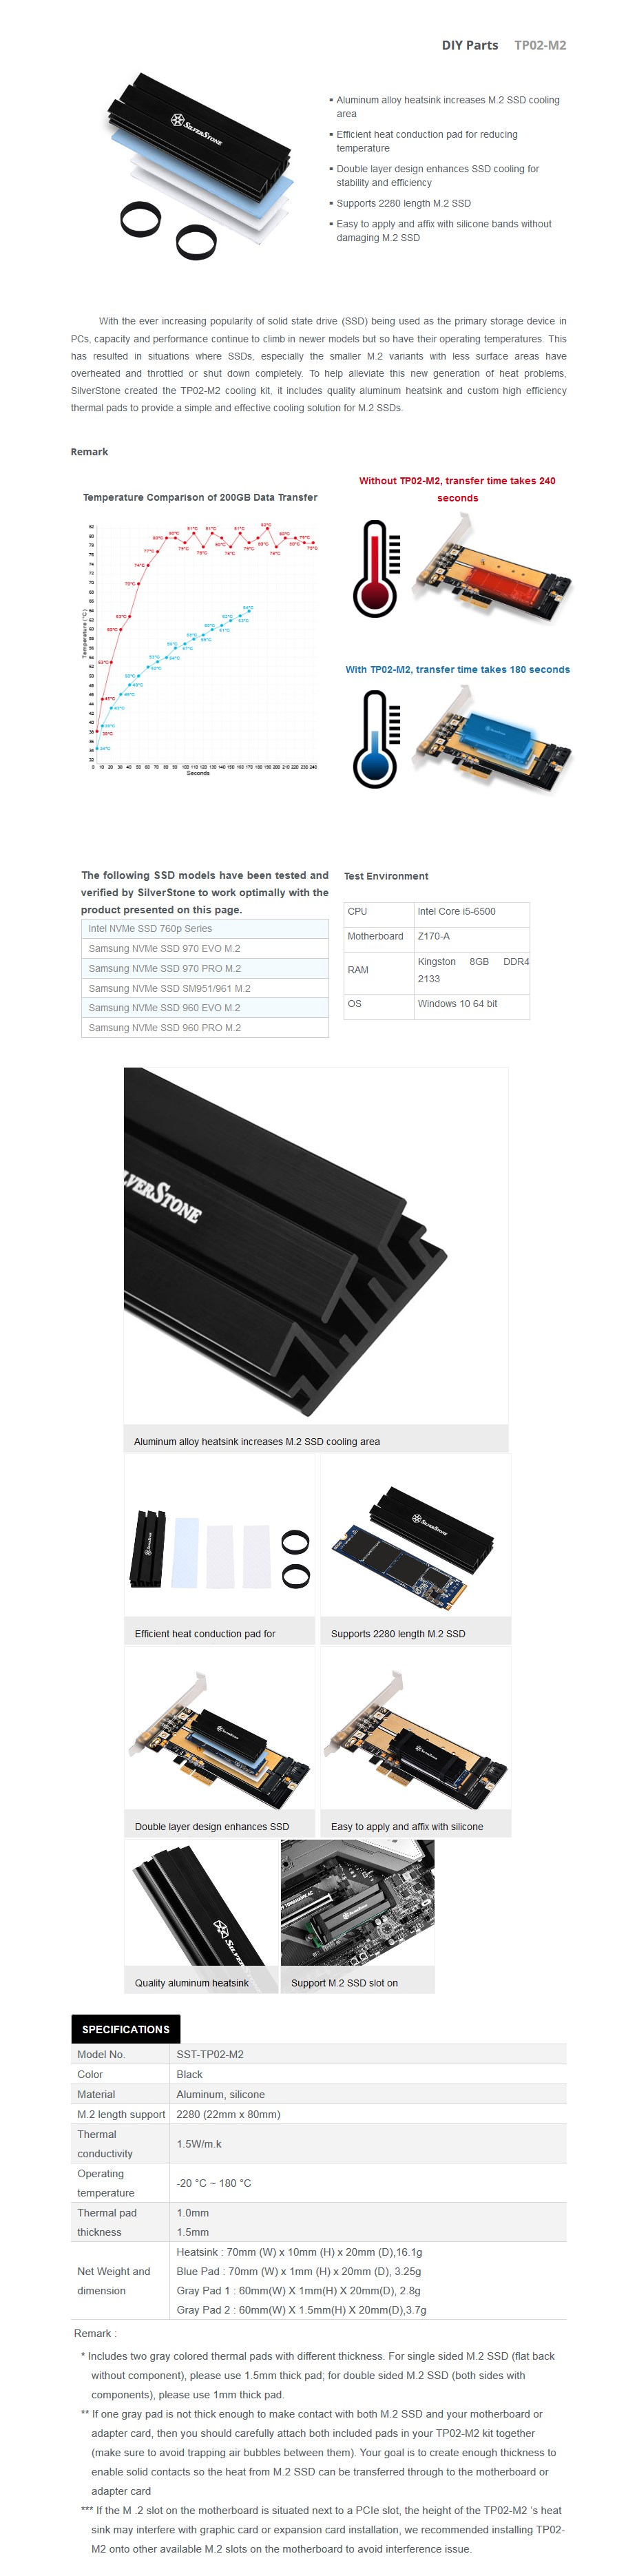 SilverStone TP02-M2 M.2 SSD Cooling Kit - Desktop Overview 1